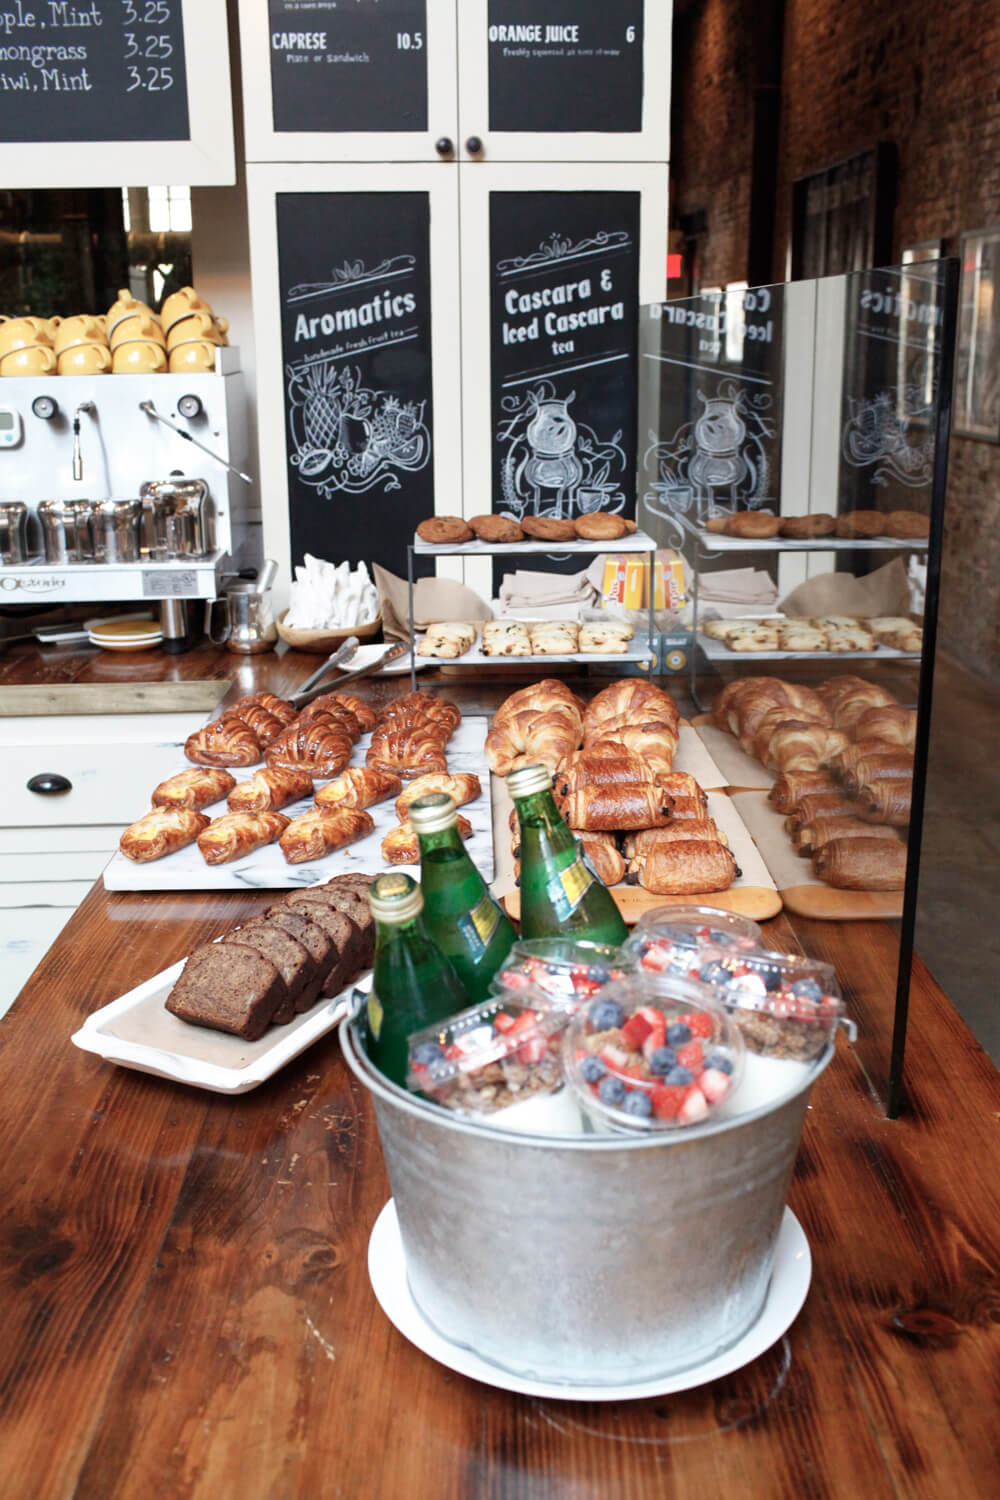 Coffee break williamsburg coffee shop Devoción new york city corporate catwalk 4